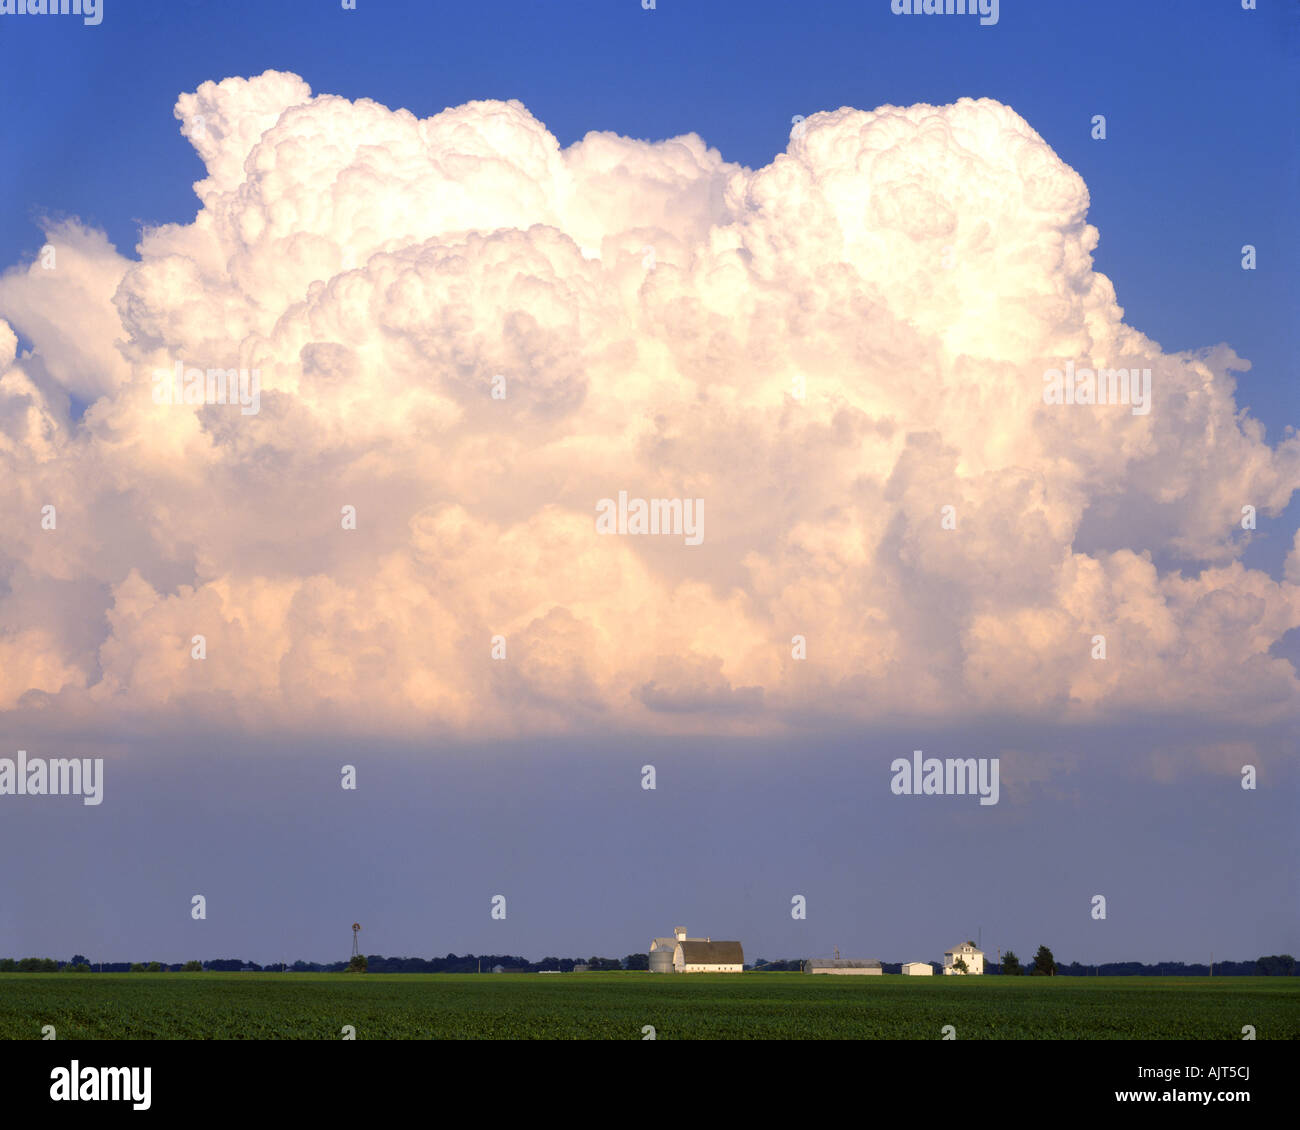 Cumulus clouds over farm in Illinois LaSalle County Ilinois  USA, by Willard Clay/Dembinsky Photo Assoc - Stock Image